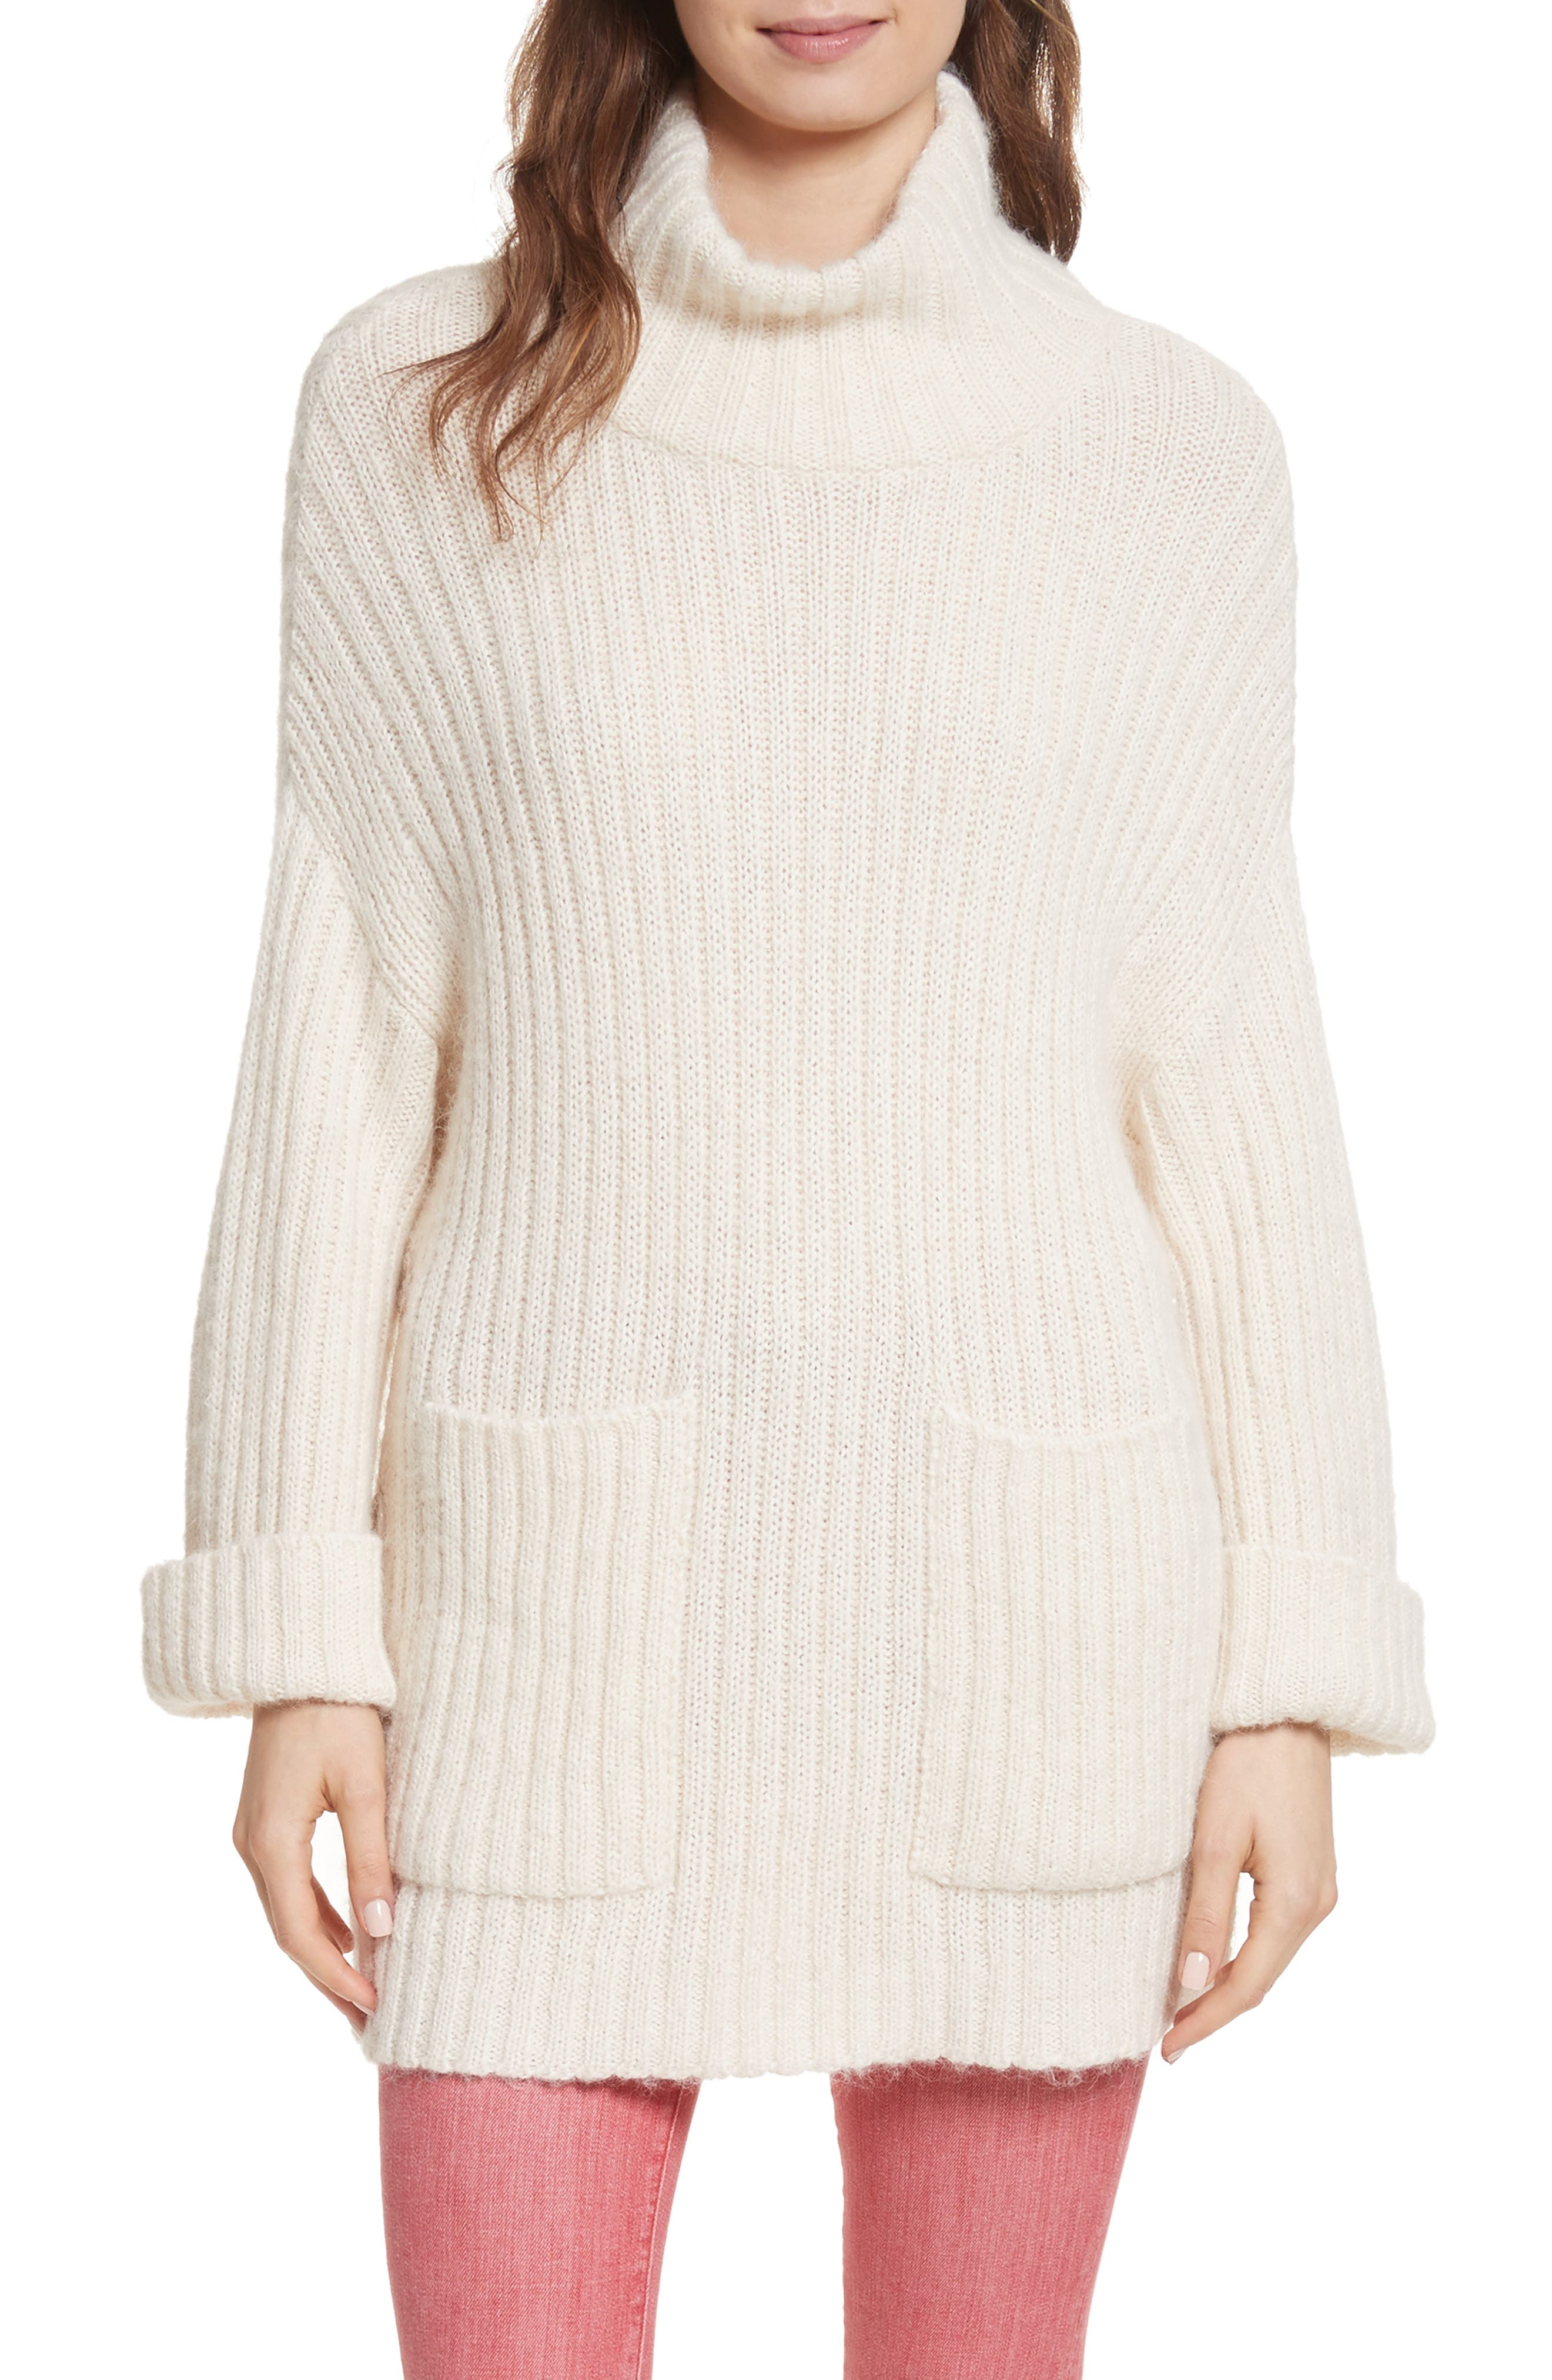 Alternate Image 1 Selected - Joie Banain Turtleneck Sweater